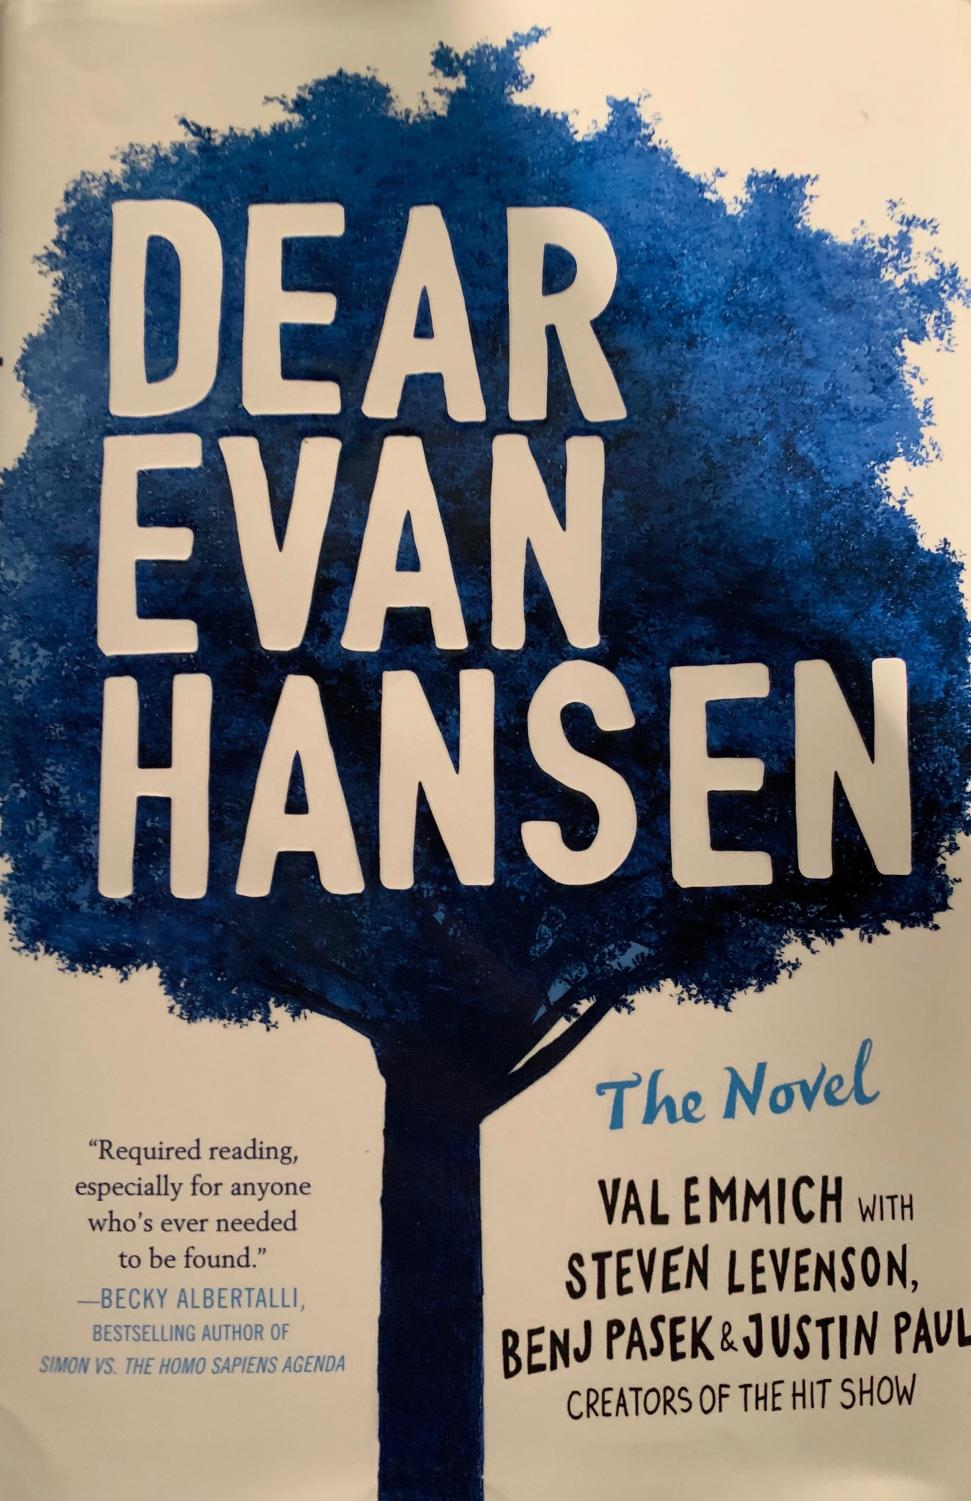 """""""Dear Evan Hansen: The Novel"""" by Steven Levenson includes some music from the musical, while adding new relationships as well."""